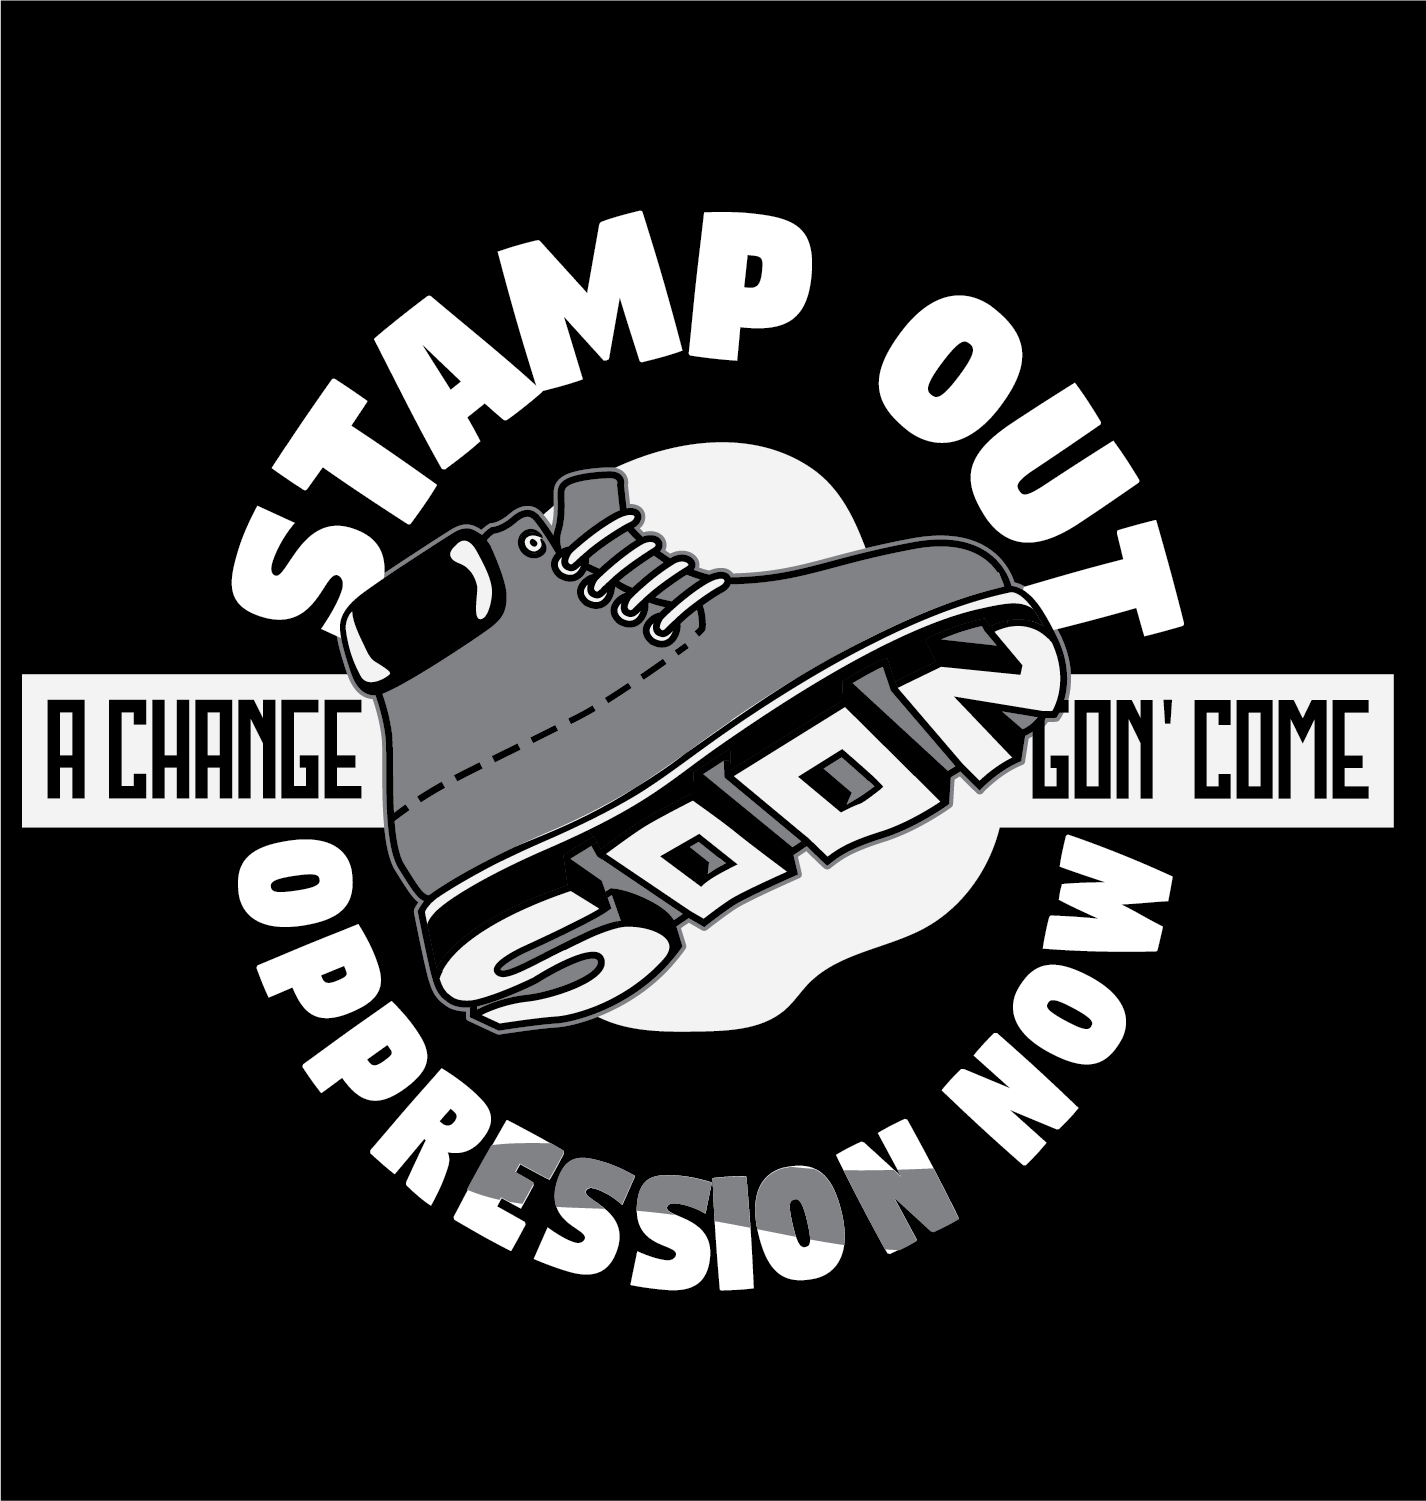 SOON: A Change Gon' Come - In solidarity with CTCORE-Organize Now!, SOON (Stamp Out Oppression Now): A Change Gon Come, employs urban, suburban, and rural strategies to advance racial justice across Connecticut.